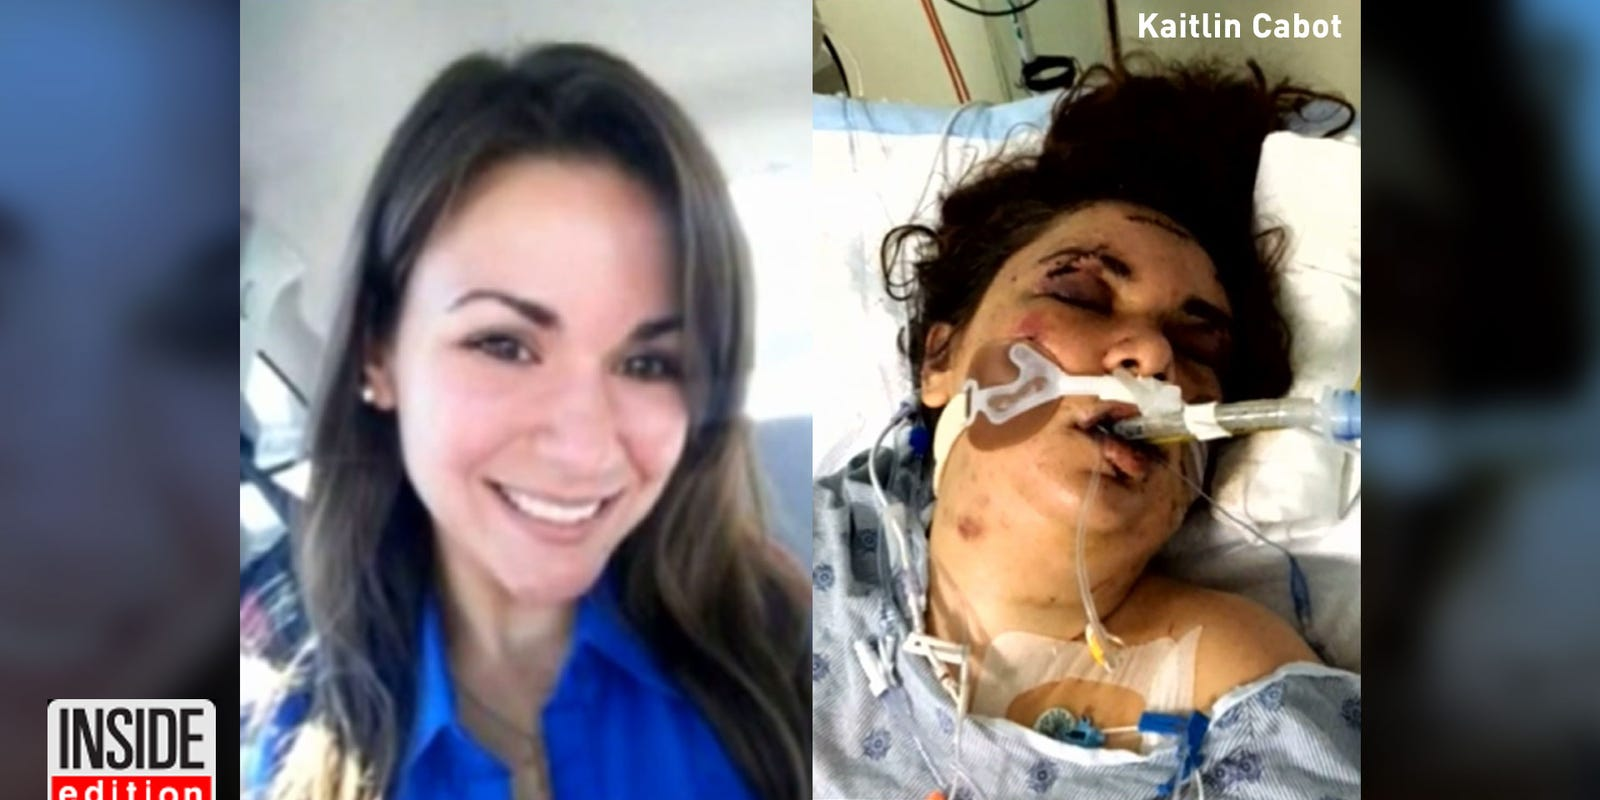 Woman Allegedly Attack By Craigslist Roommate May Never See Again